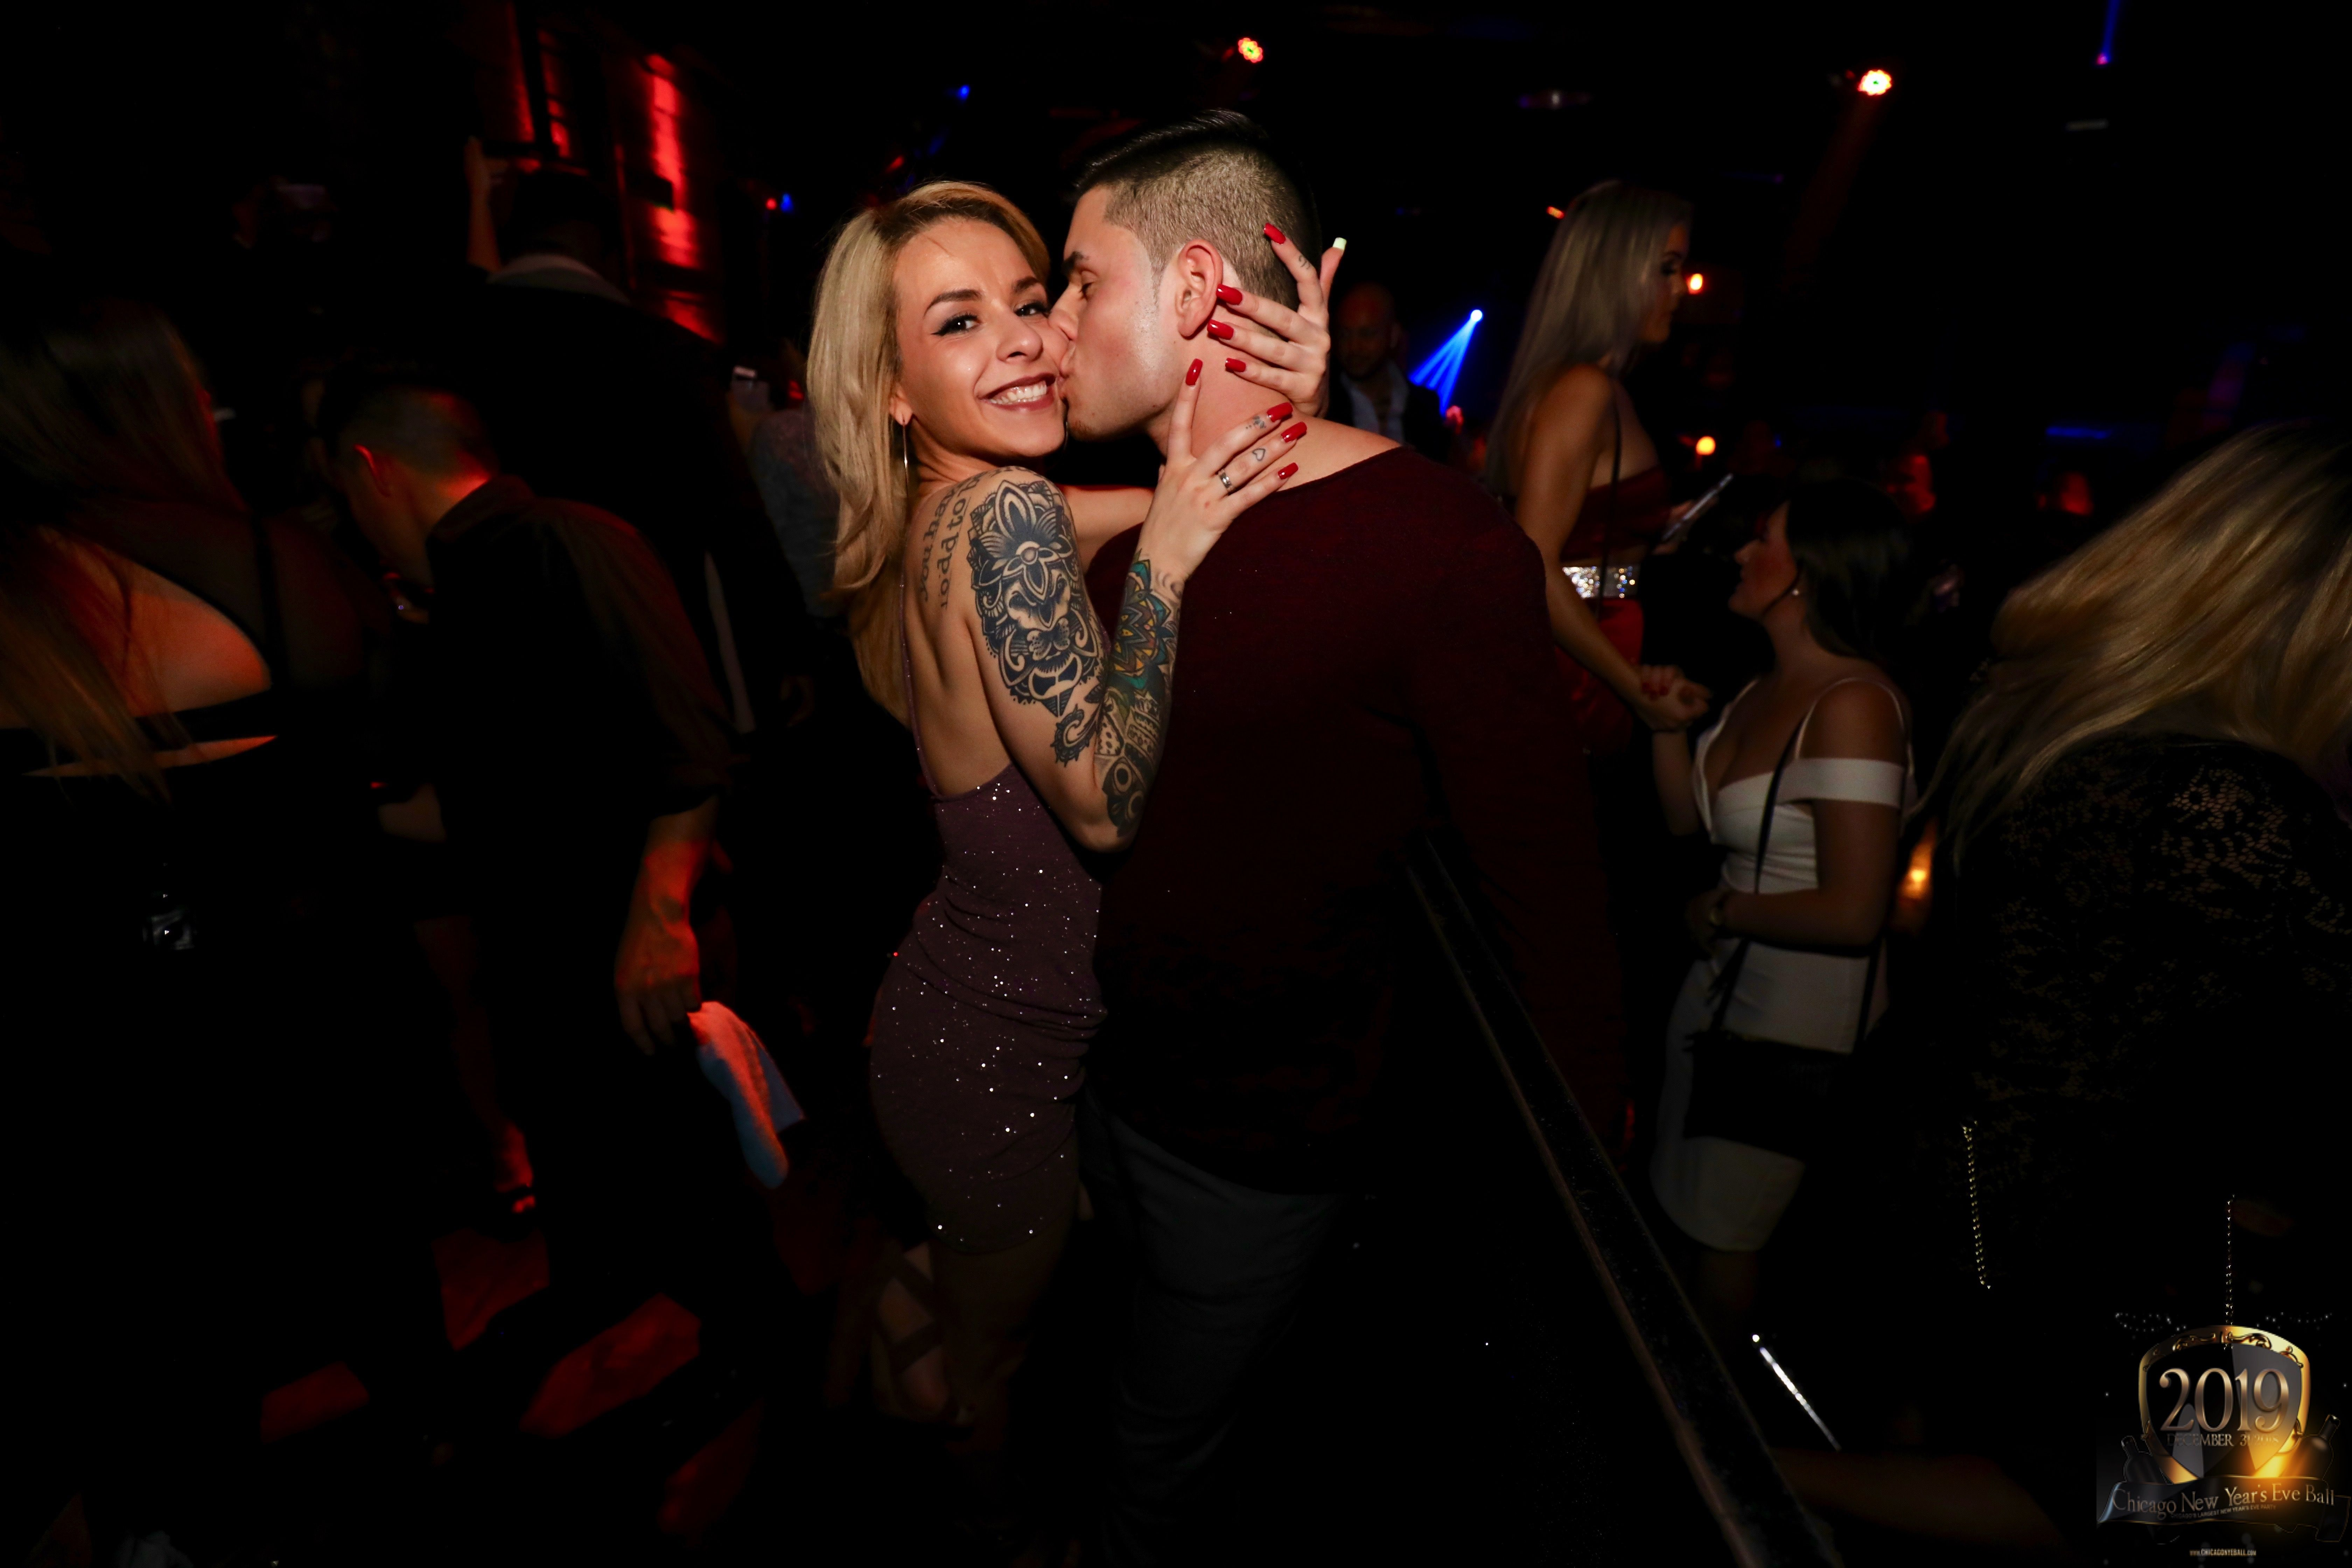 New Year S Eve Ball 2018 2019 Party At The Congress Plaza Hotel On Michigan Avenue Https Www Newyearseve Chicago Events New Years Party New Years Eve Party